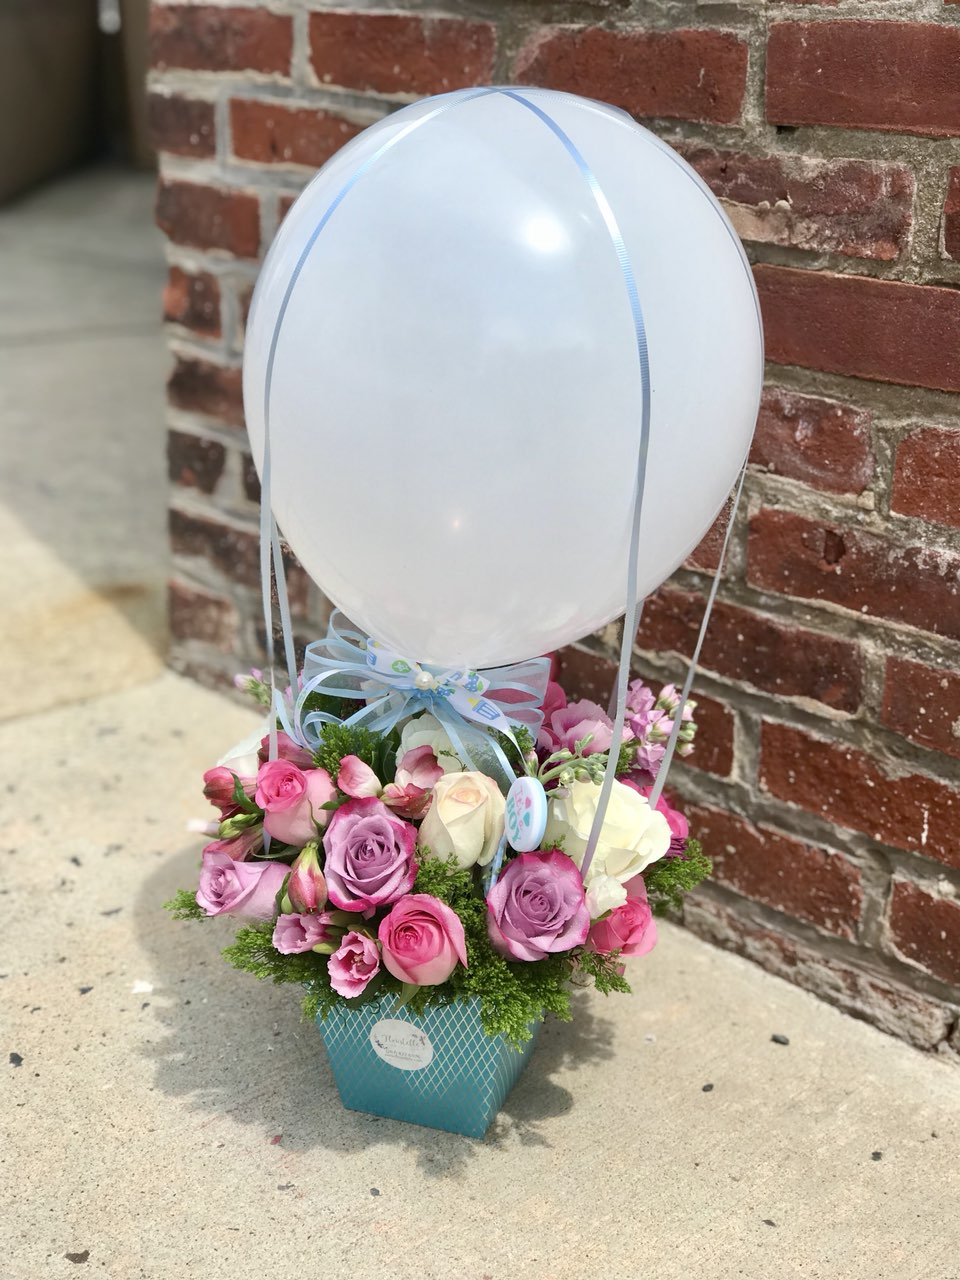 Celebrate a sweet boys's and girl`s arrival with this precious air balloon!  Includes:  Pink, white, lavender roses, pink alstroemeria, assorted greens. Box Balloon Free message card